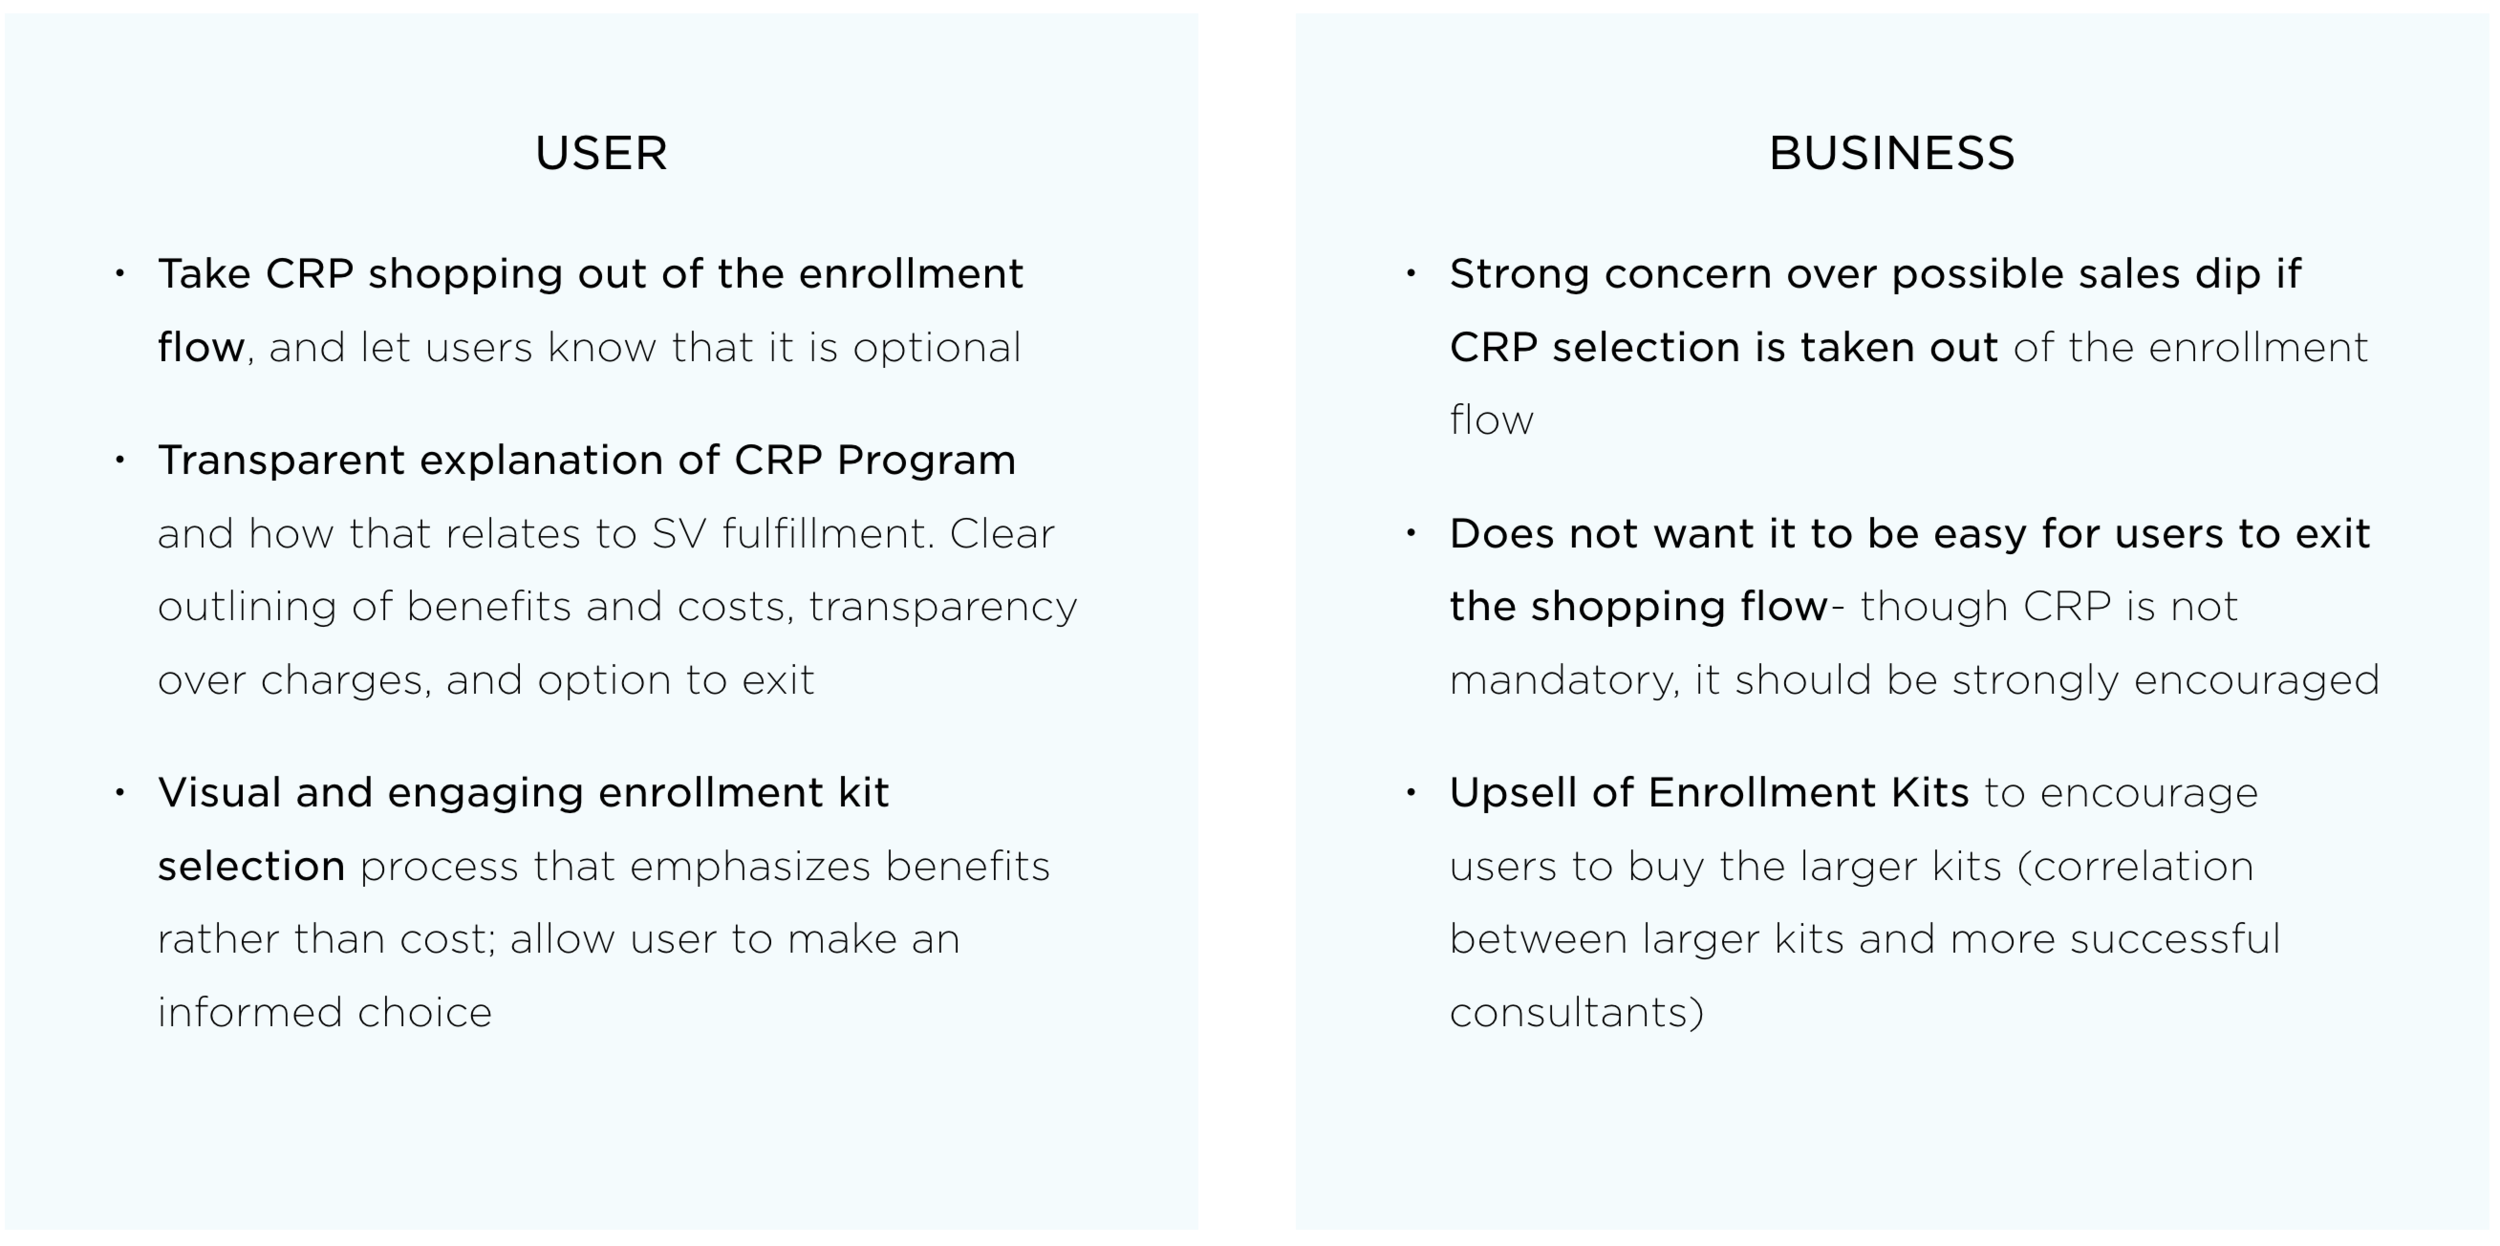 Balancing Business vs. User Requirements